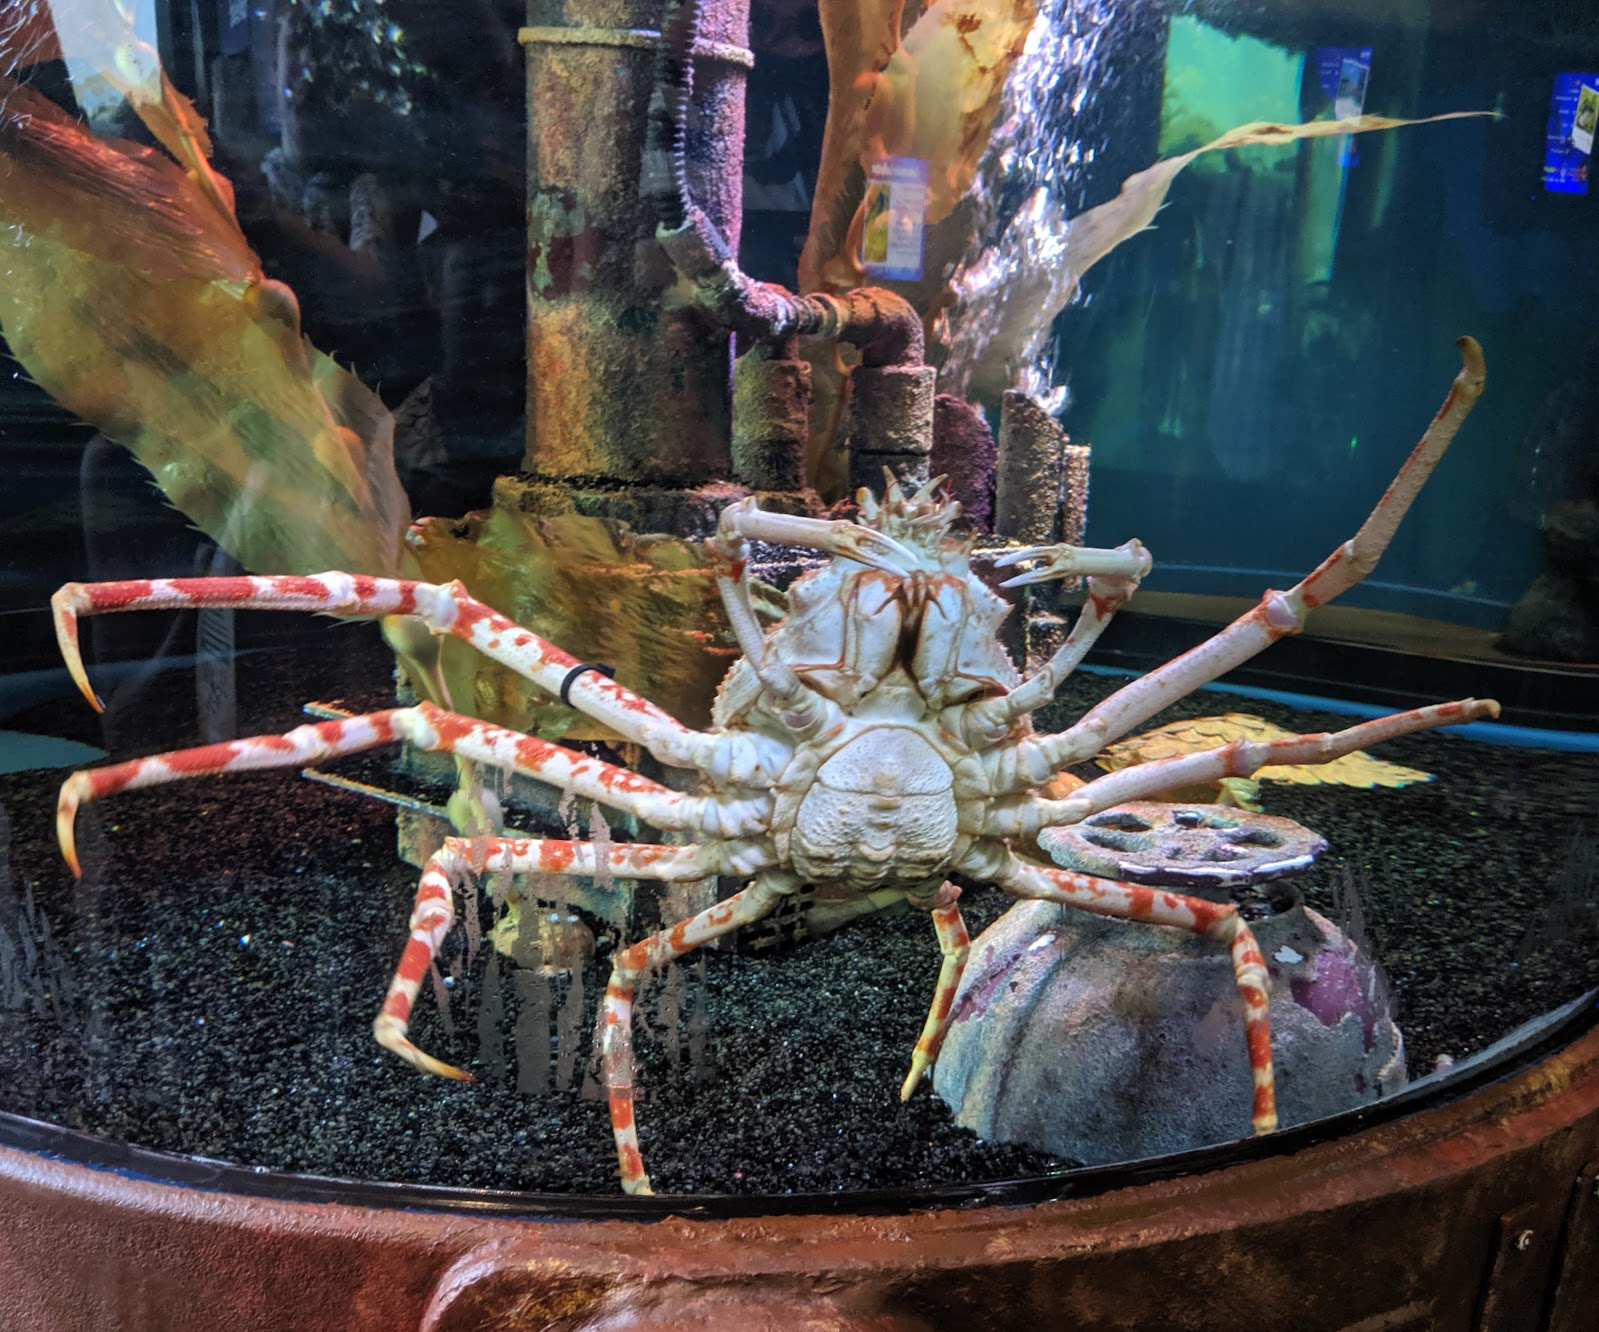 A Short Break at Cameron Lodges, Loch Lomond - Loch Lomond Shores - giant crab at SEALIFE Loch Lomond